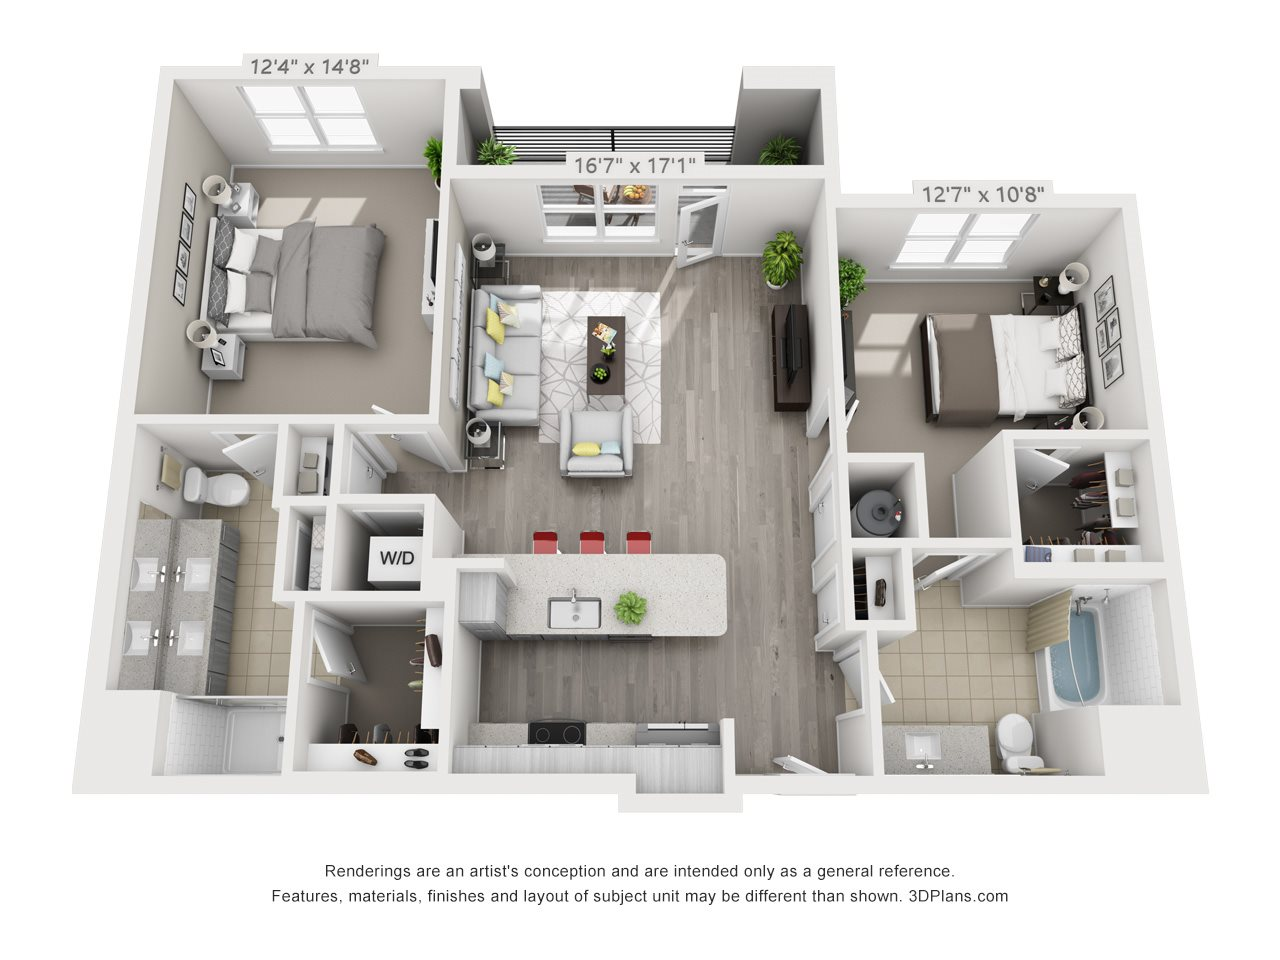 B3 2 BEDROOM/2 BATH Floor Plan 16